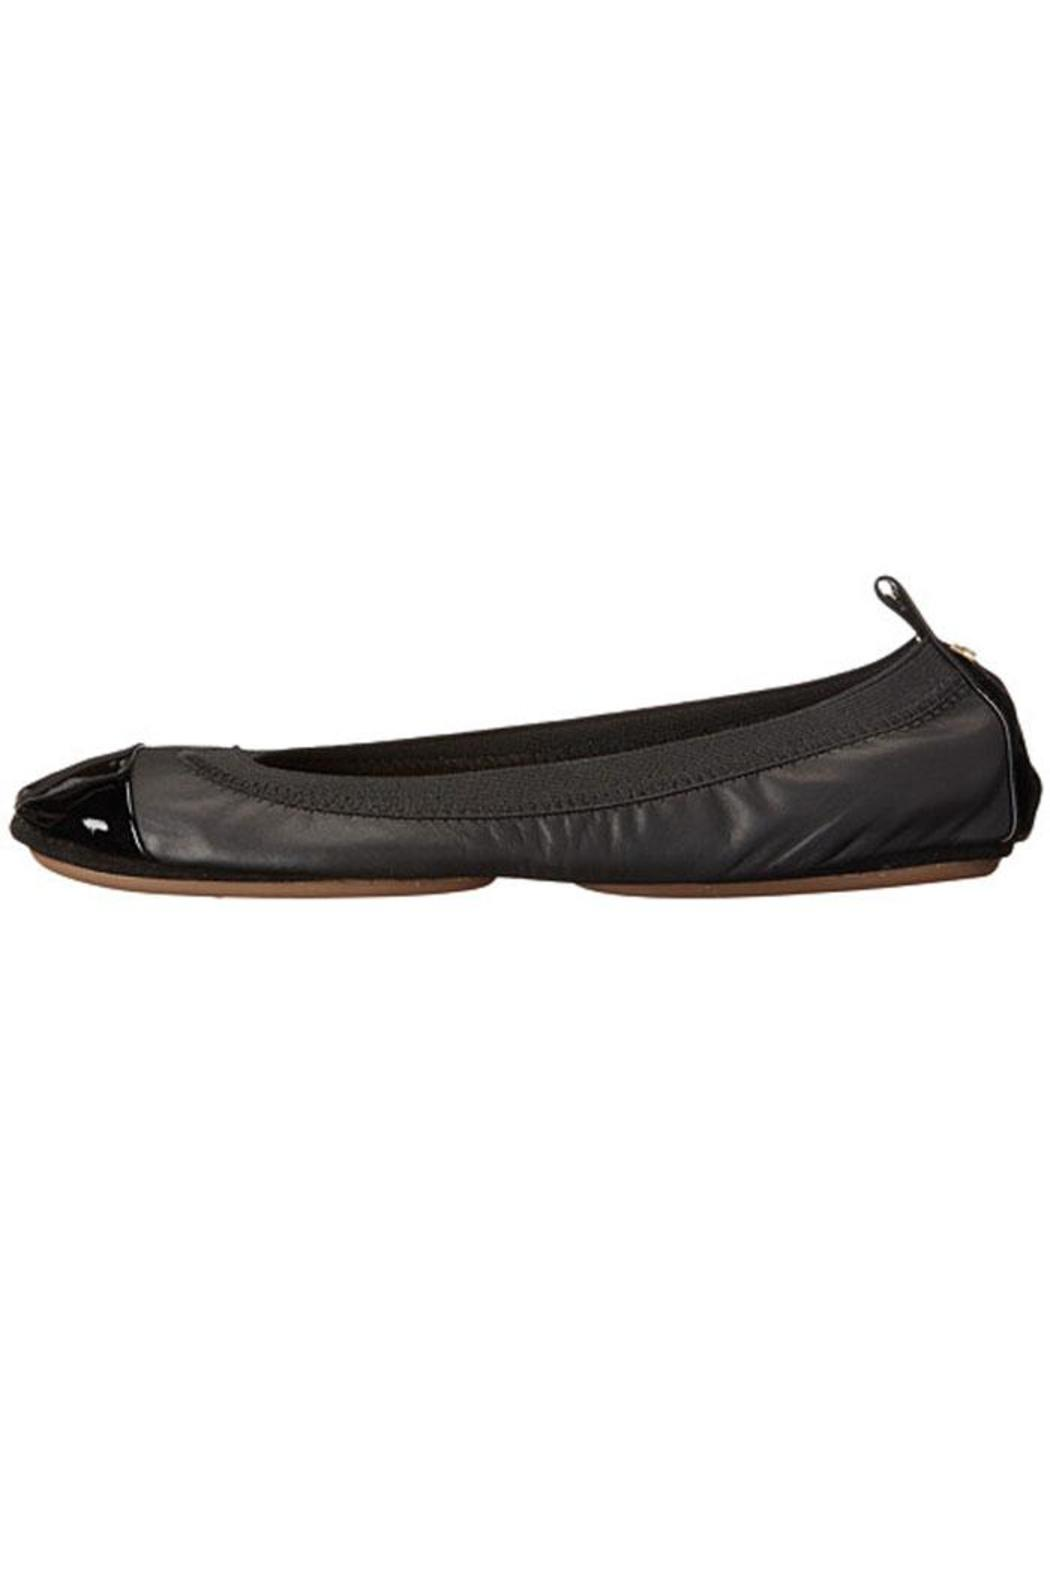 Yosi Samra Two-Tone Foldable Flats - Main Image